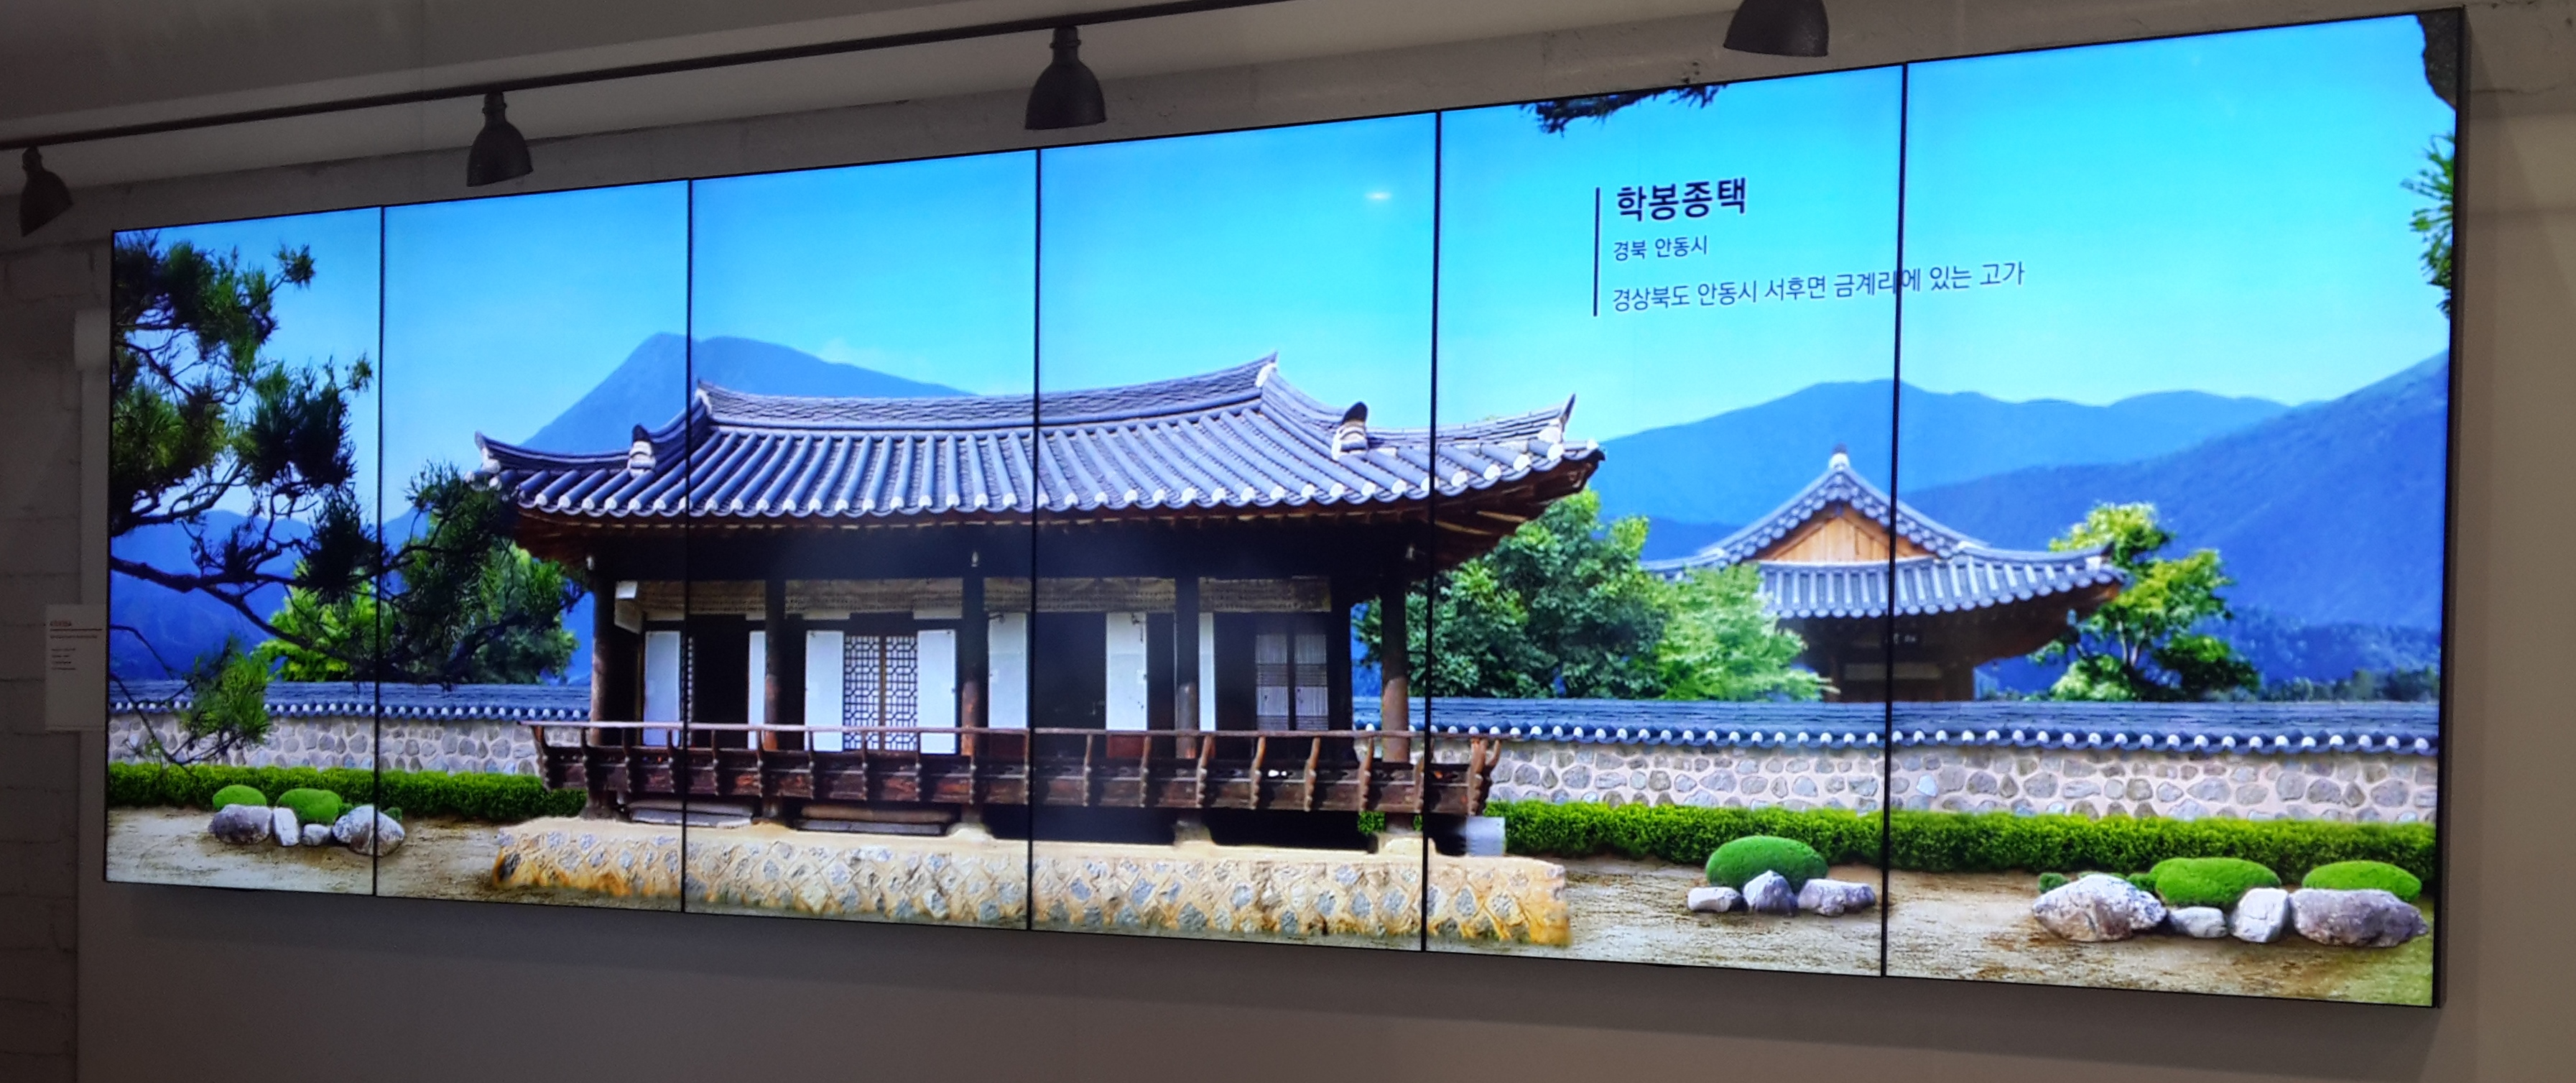 videowall 6x1 vertical